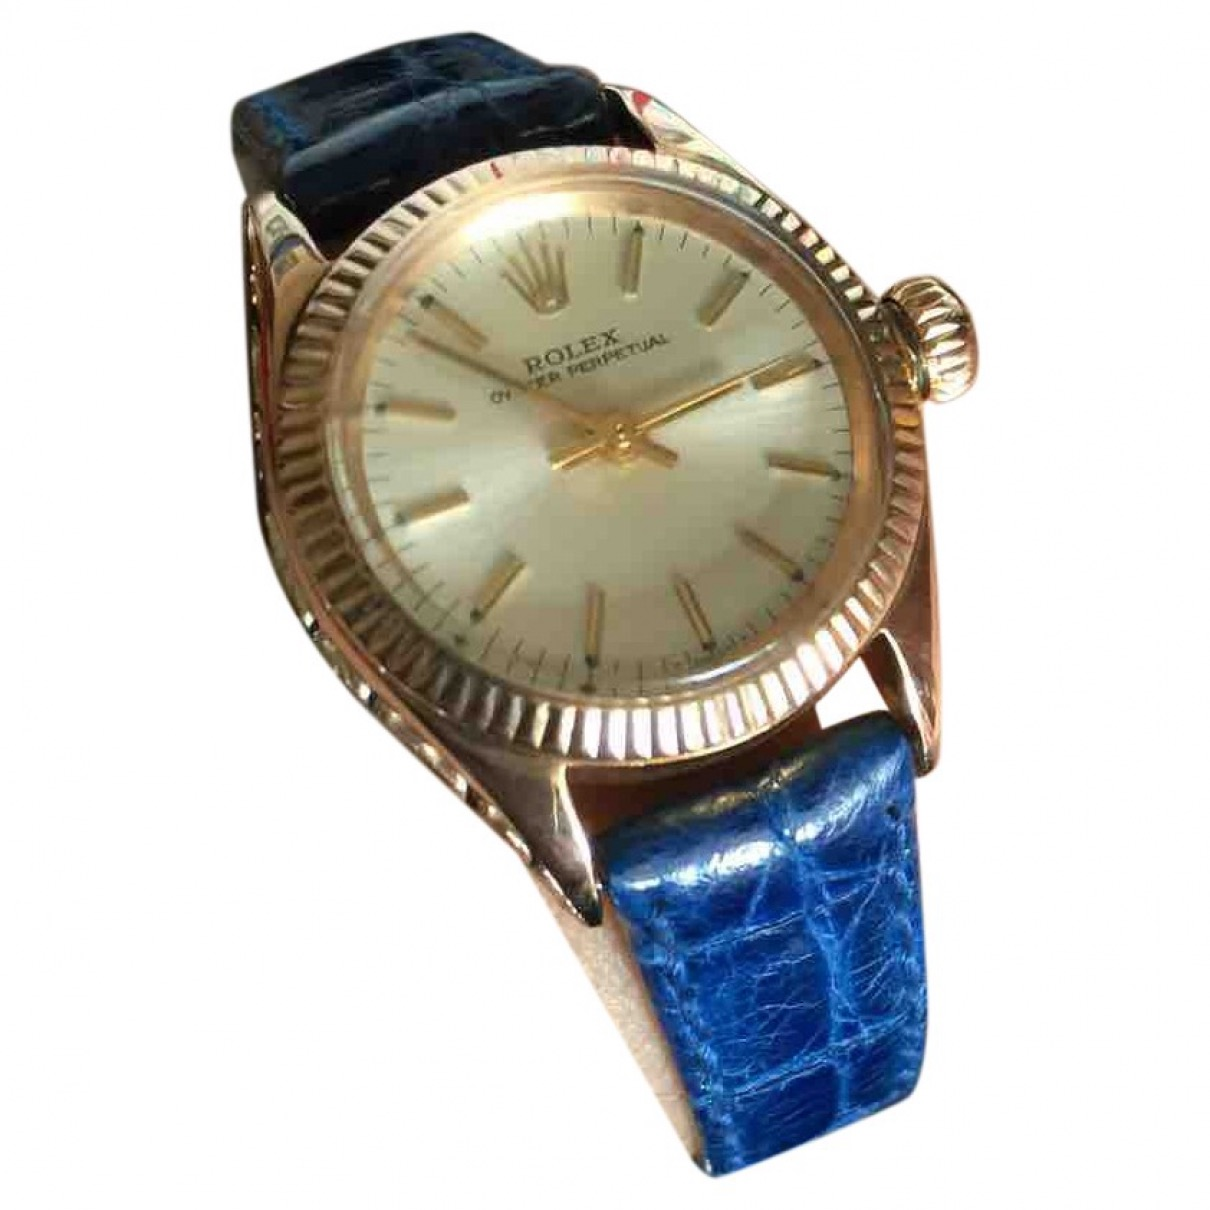 Orologio Oyster Perpetual Lady in Oro giallo